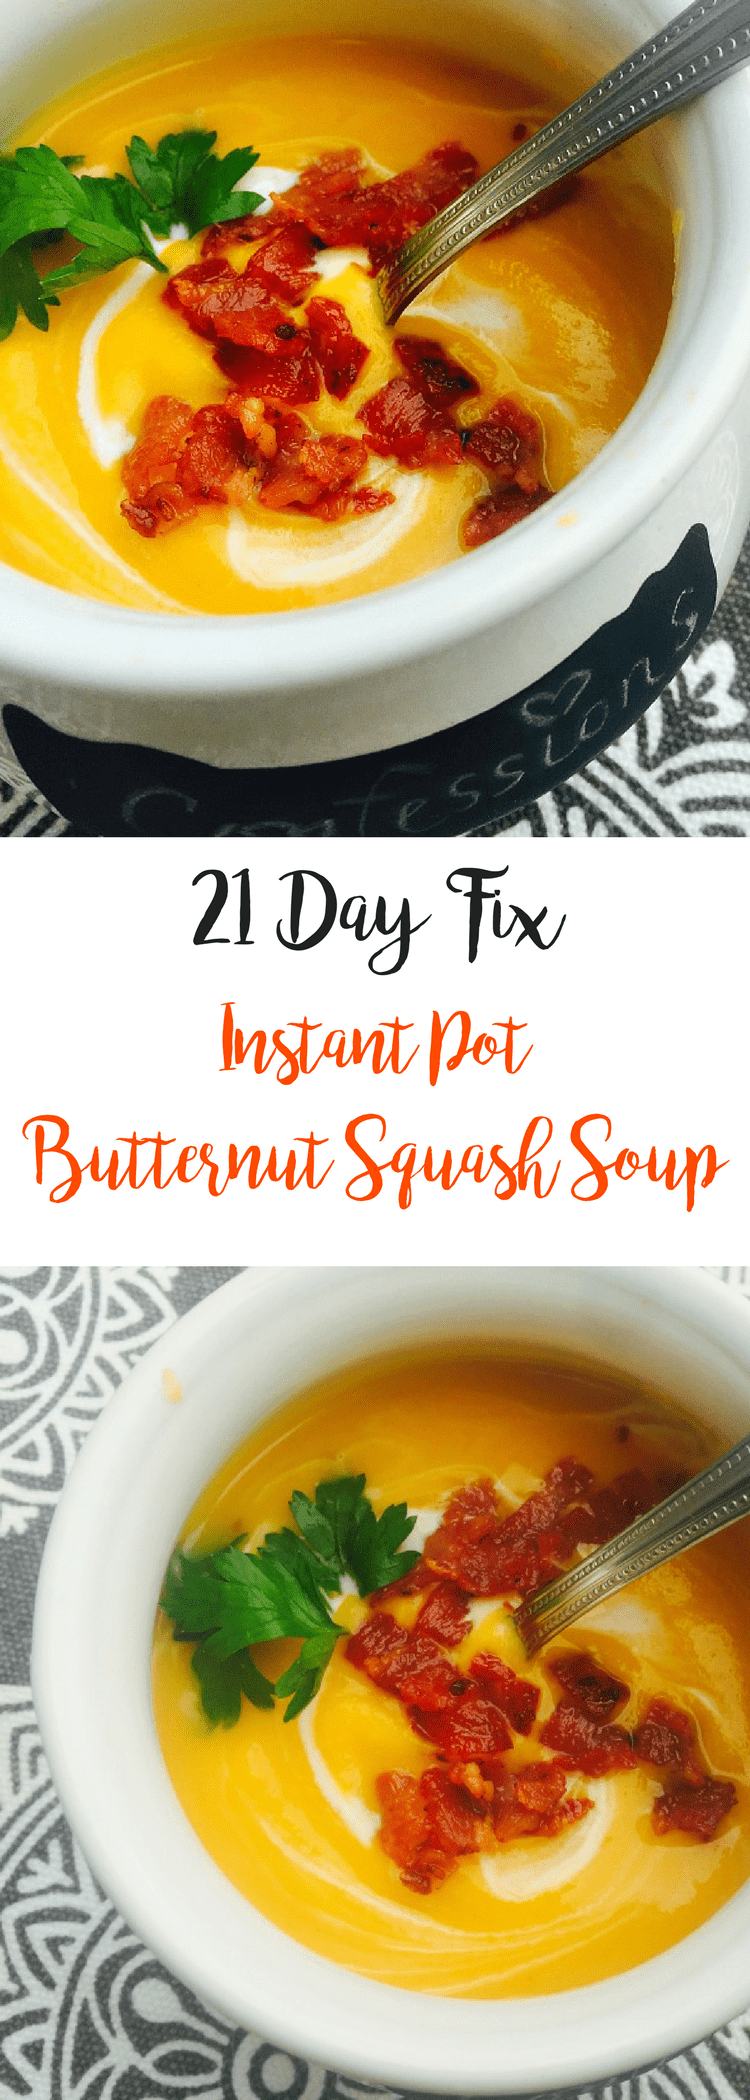 21 Day Fix Instant Pot Butternut Squash Soup | Confessions of a Fit Foodie